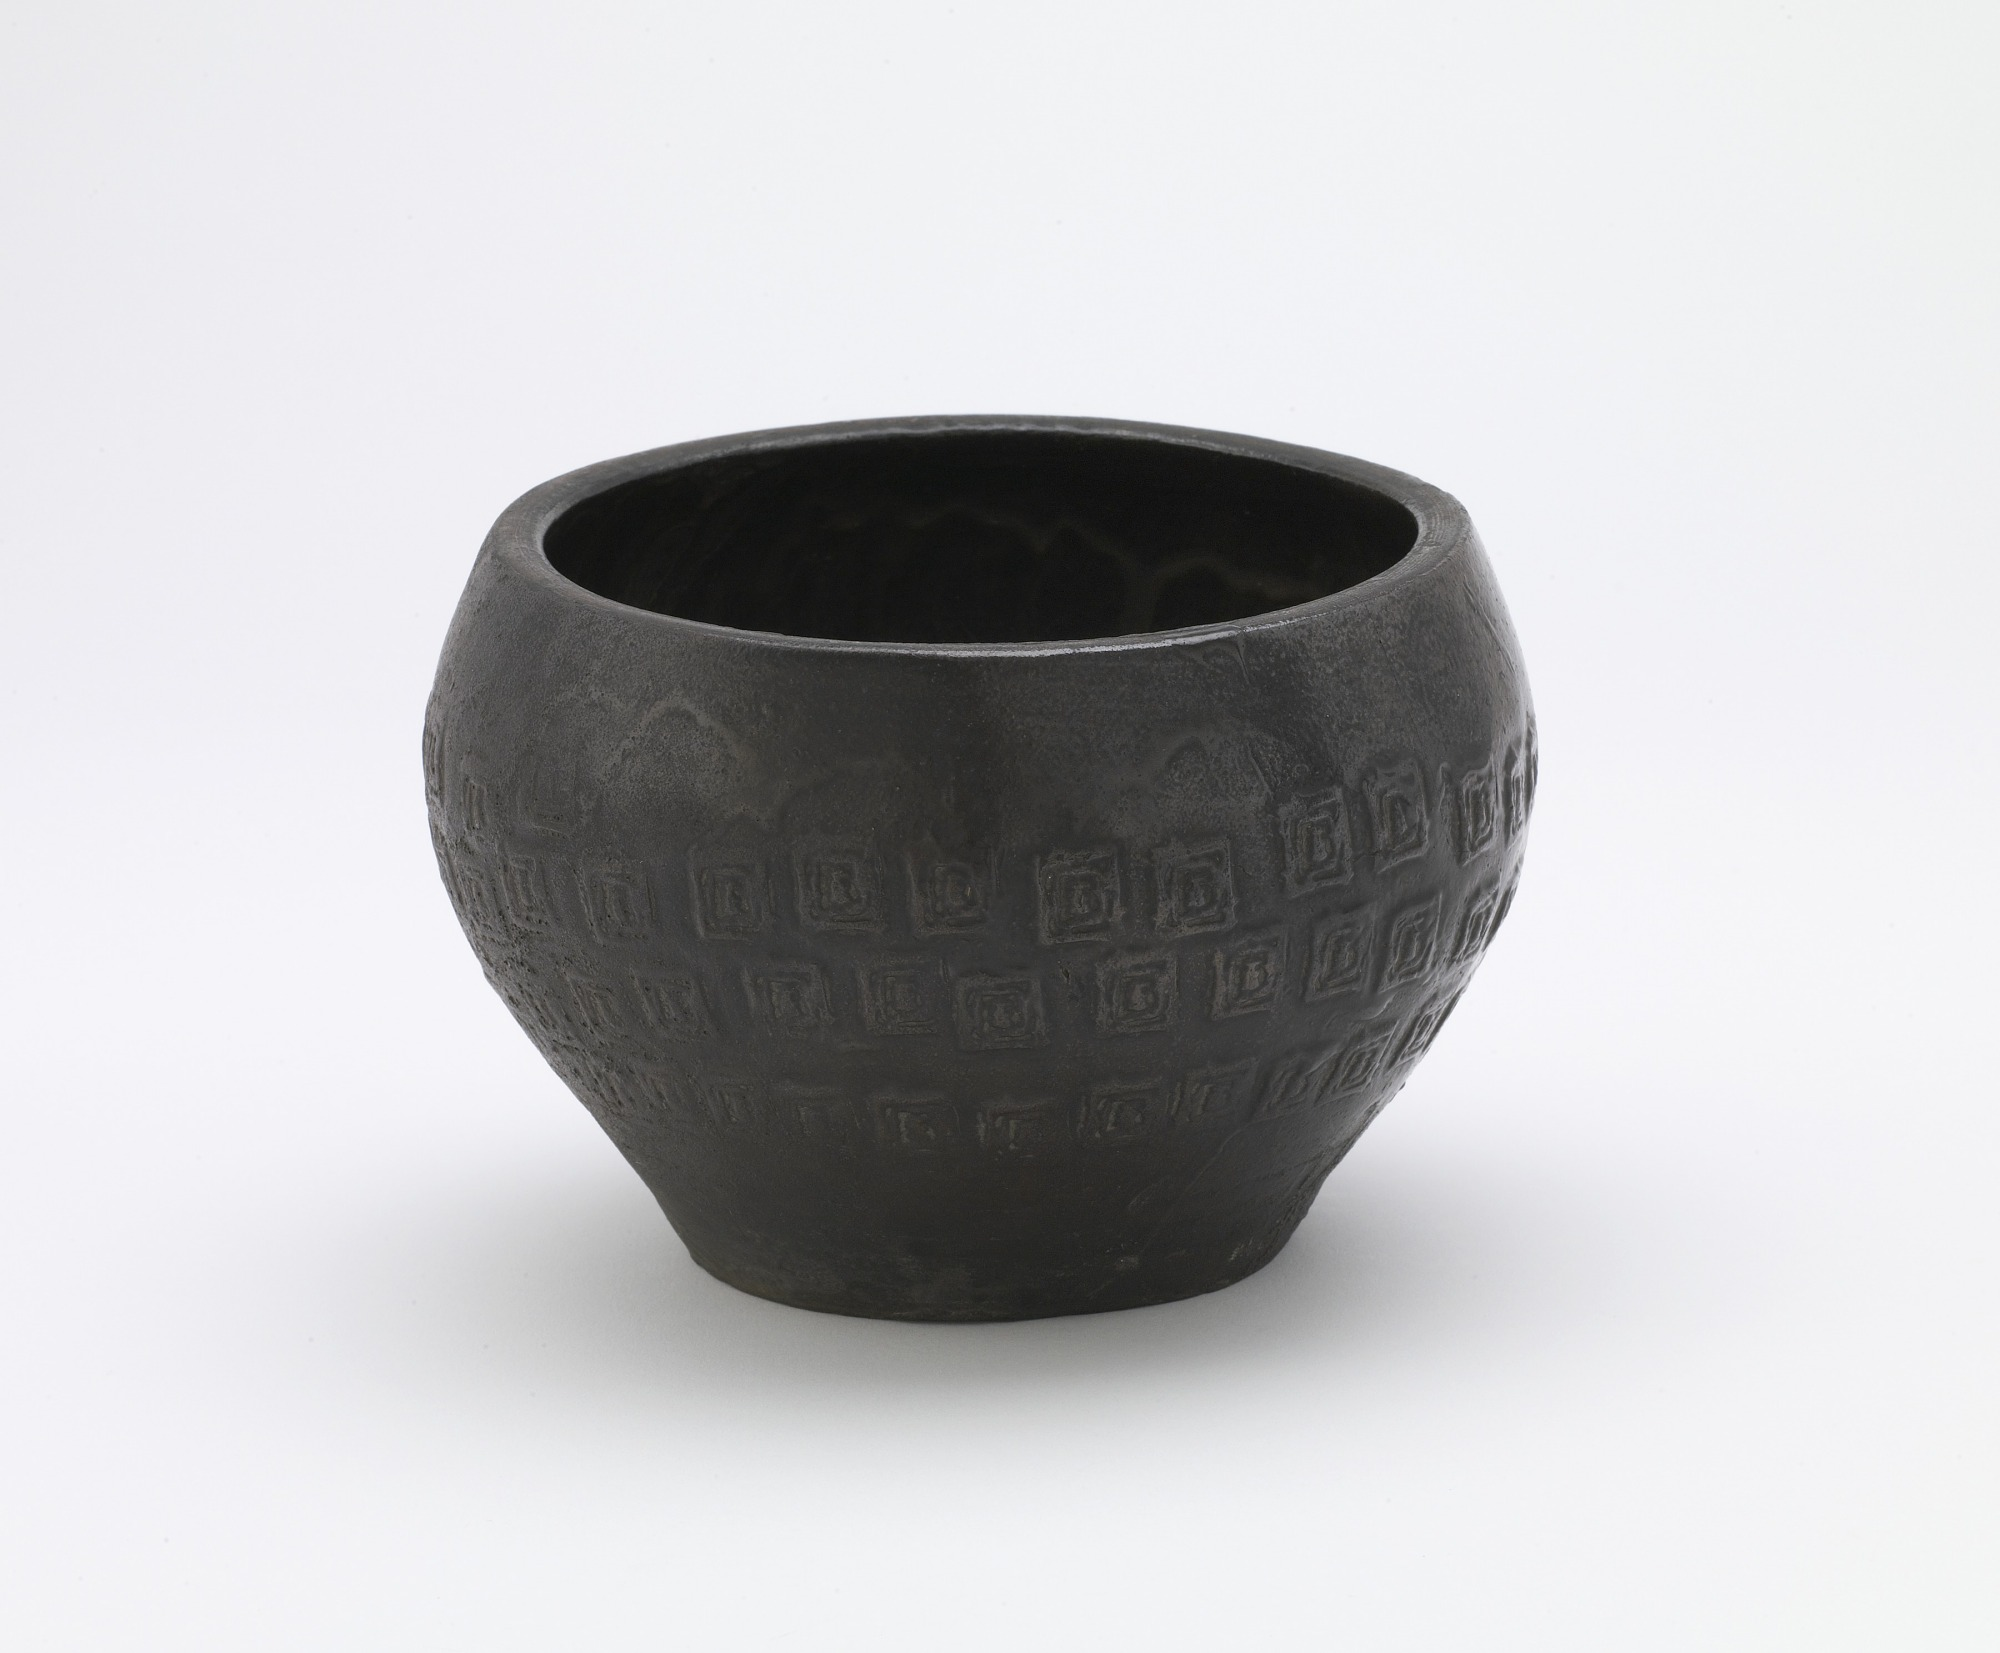 Bowl with stamp-impressed relief designs, 3/4 profile